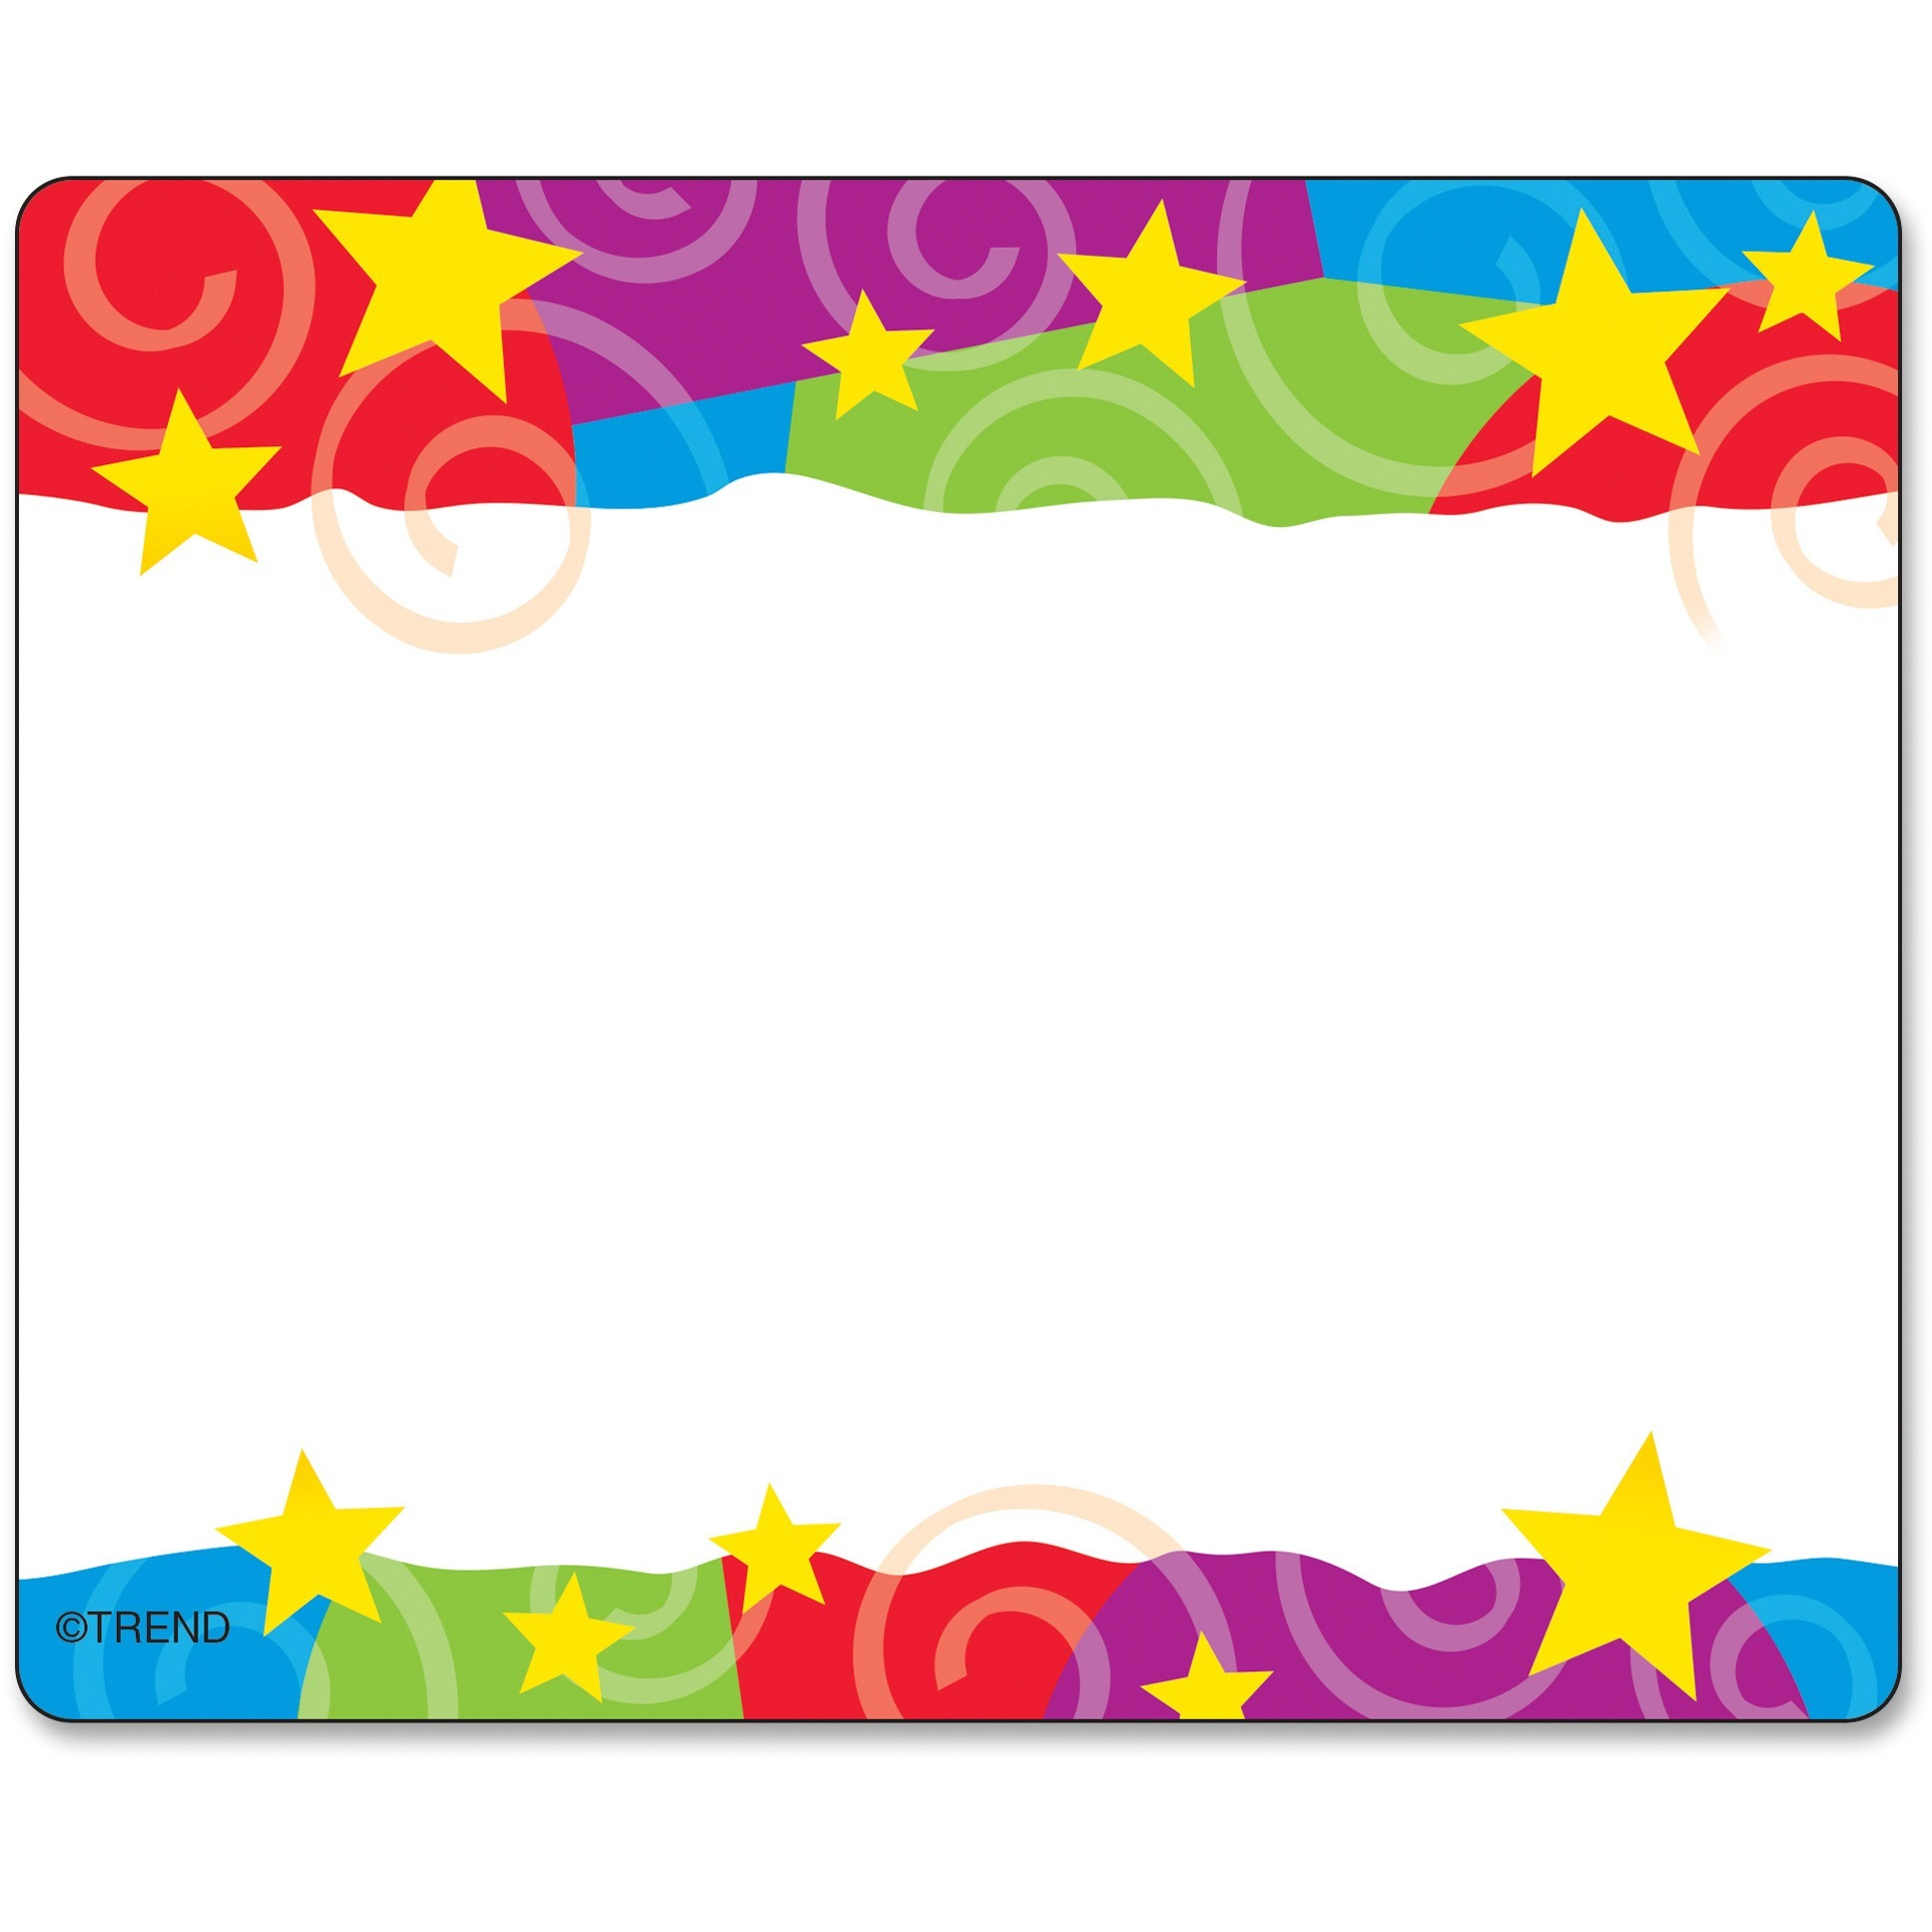 Trend, TEPT68070, Stars & Swirls Colorful Self-adhesive Name Tags, 36 / Pack, Assorted